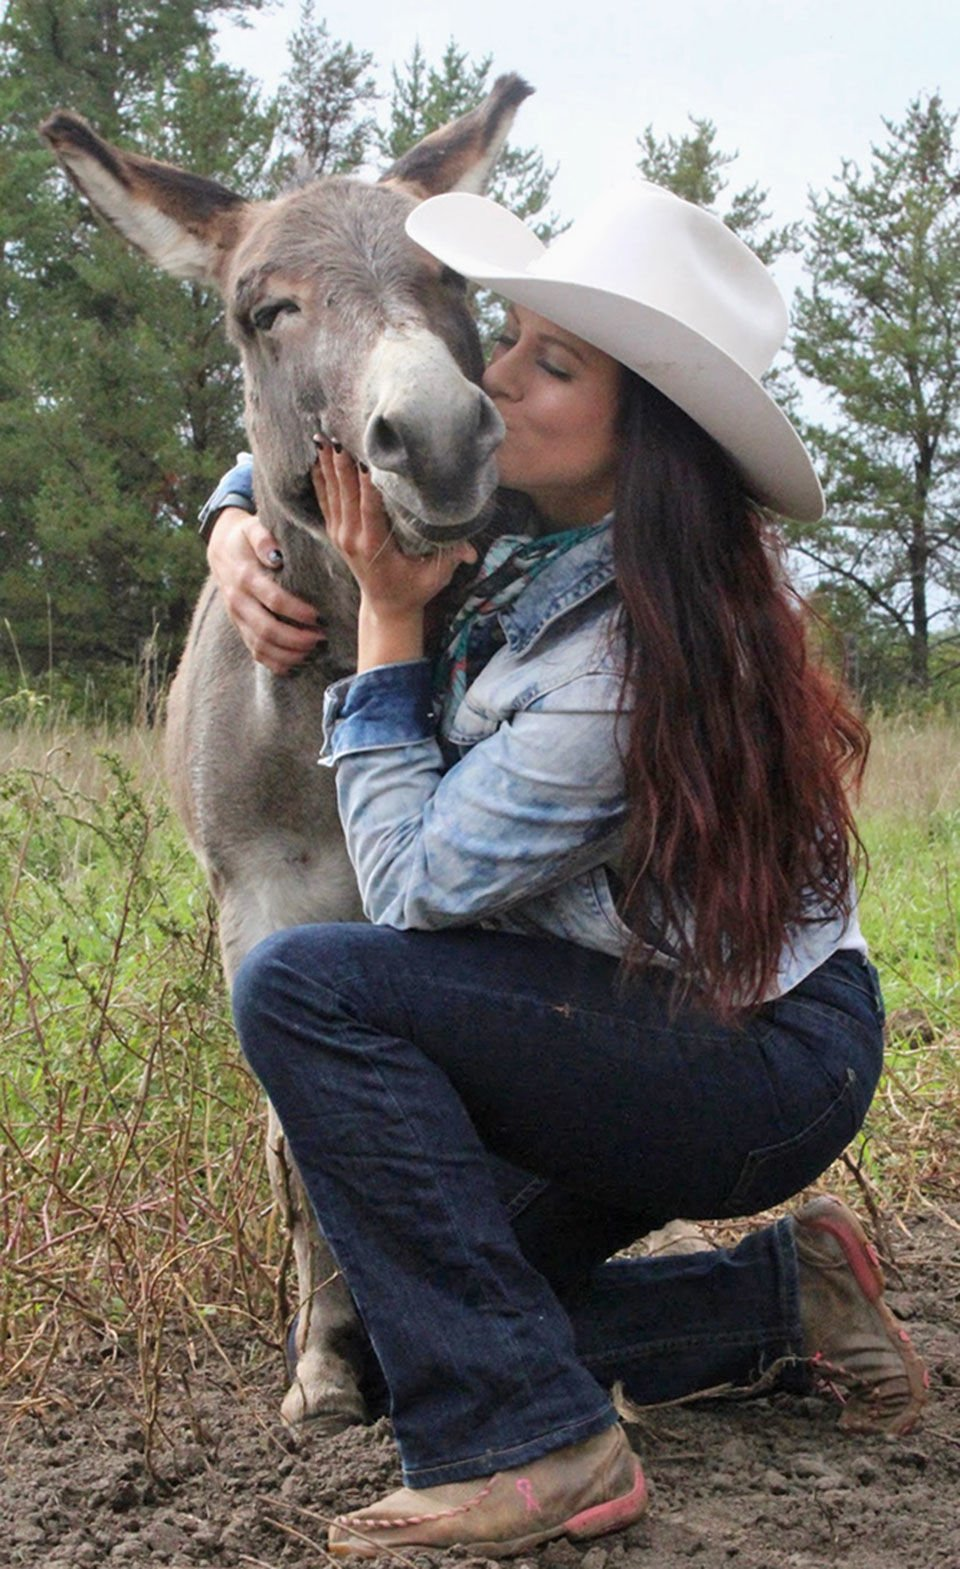 Retired rodeo donkey finds fame on Tik Tok